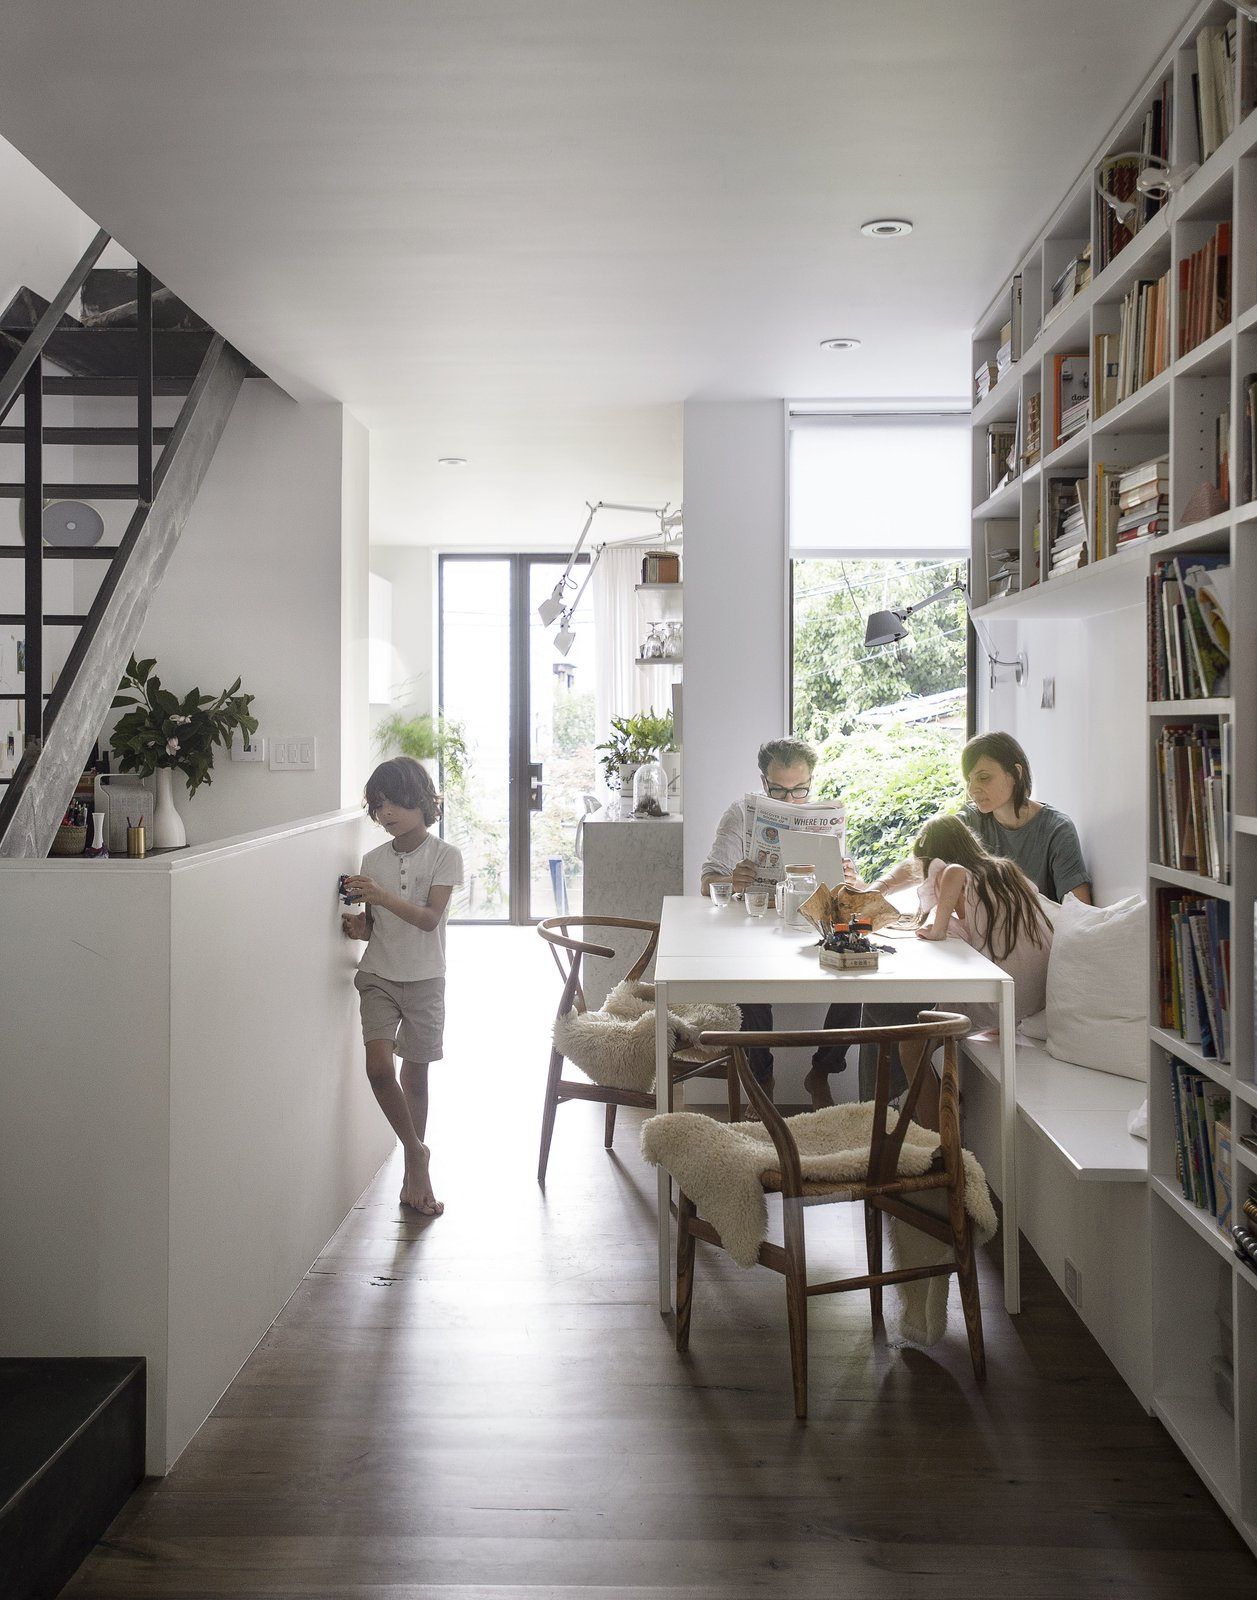 Photo 1 of 19 in An 11-Foot-Wide Row House in Brooklyn Grows Up to Make Room For a Young Family